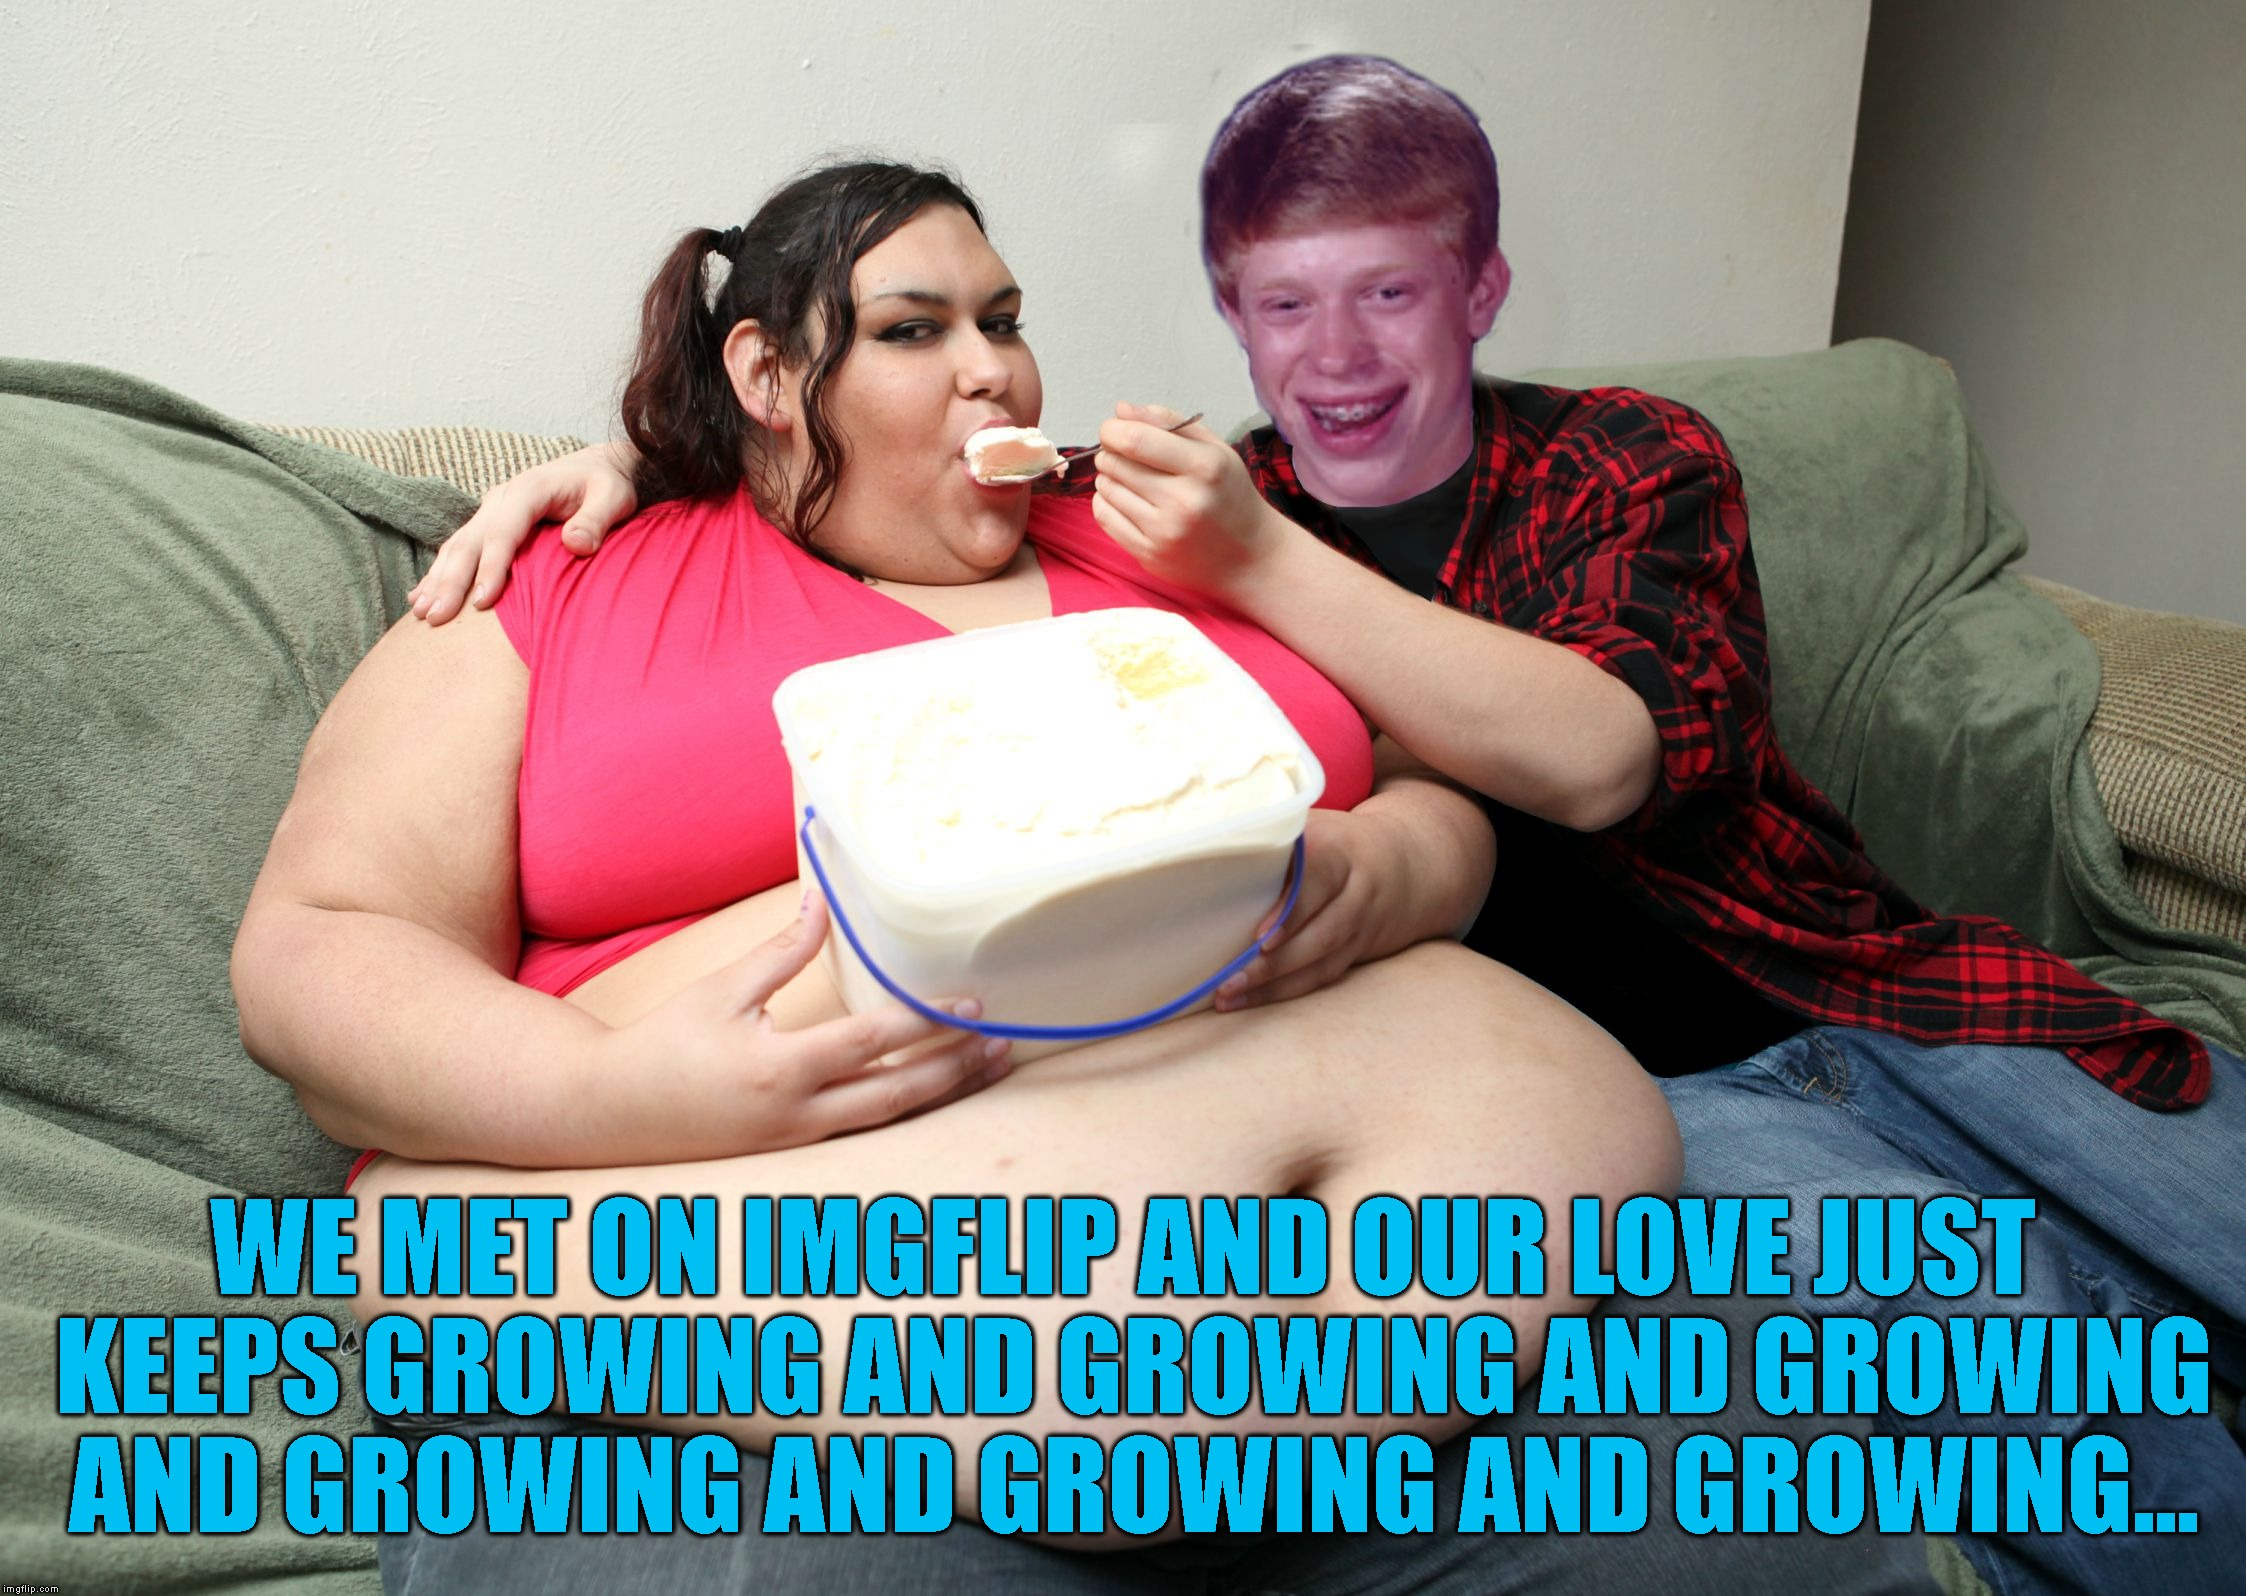 Bad Luck Brian Fat Feeder | WE MET ON IMGFLIP AND OUR LOVE JUST KEEPS GROWING AND GROWING AND GROWING AND GROWING AND GROWING AND GROWING... | image tagged in bad luck brian fat feeder | made w/ Imgflip meme maker